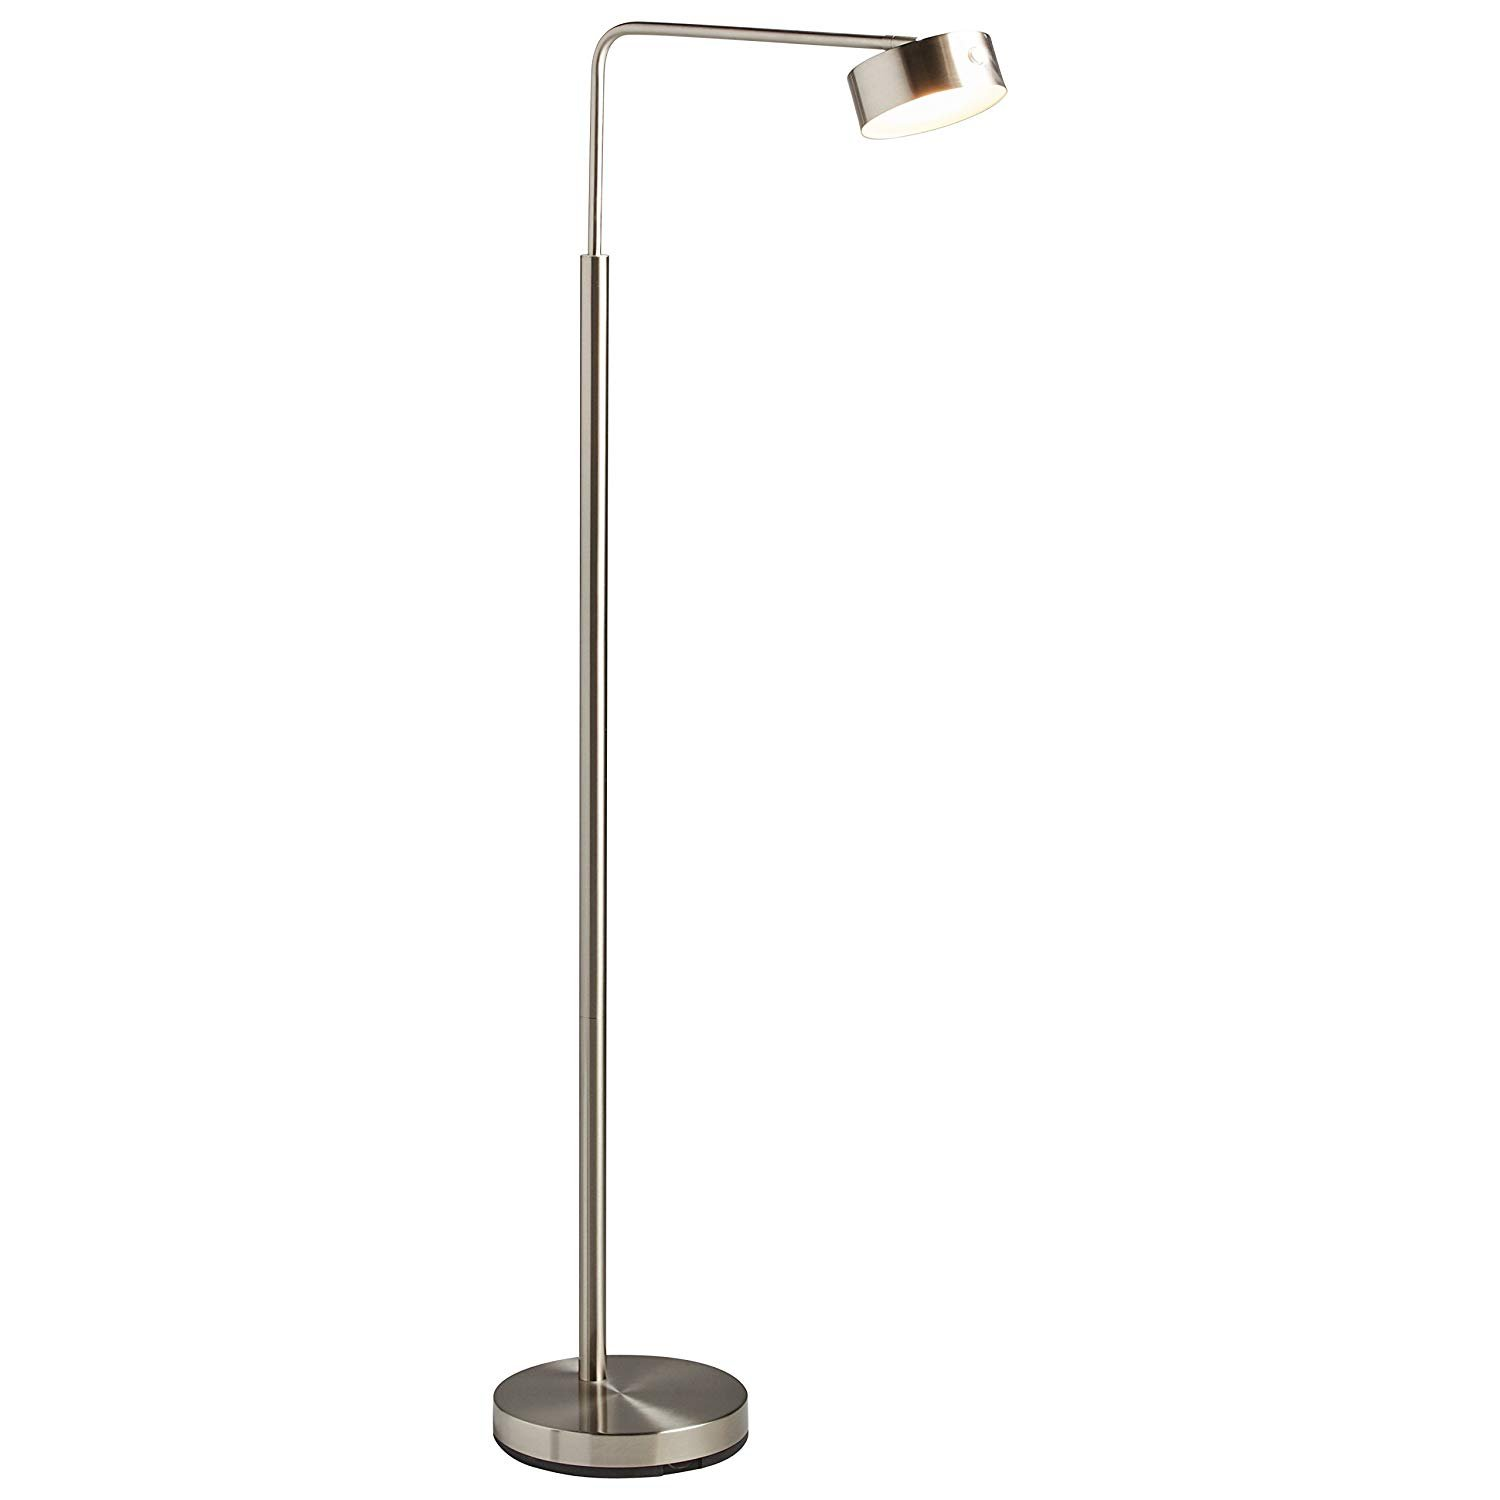 Save 15 percent on this minimalist modern-design style lamp (Photo via Amazon)